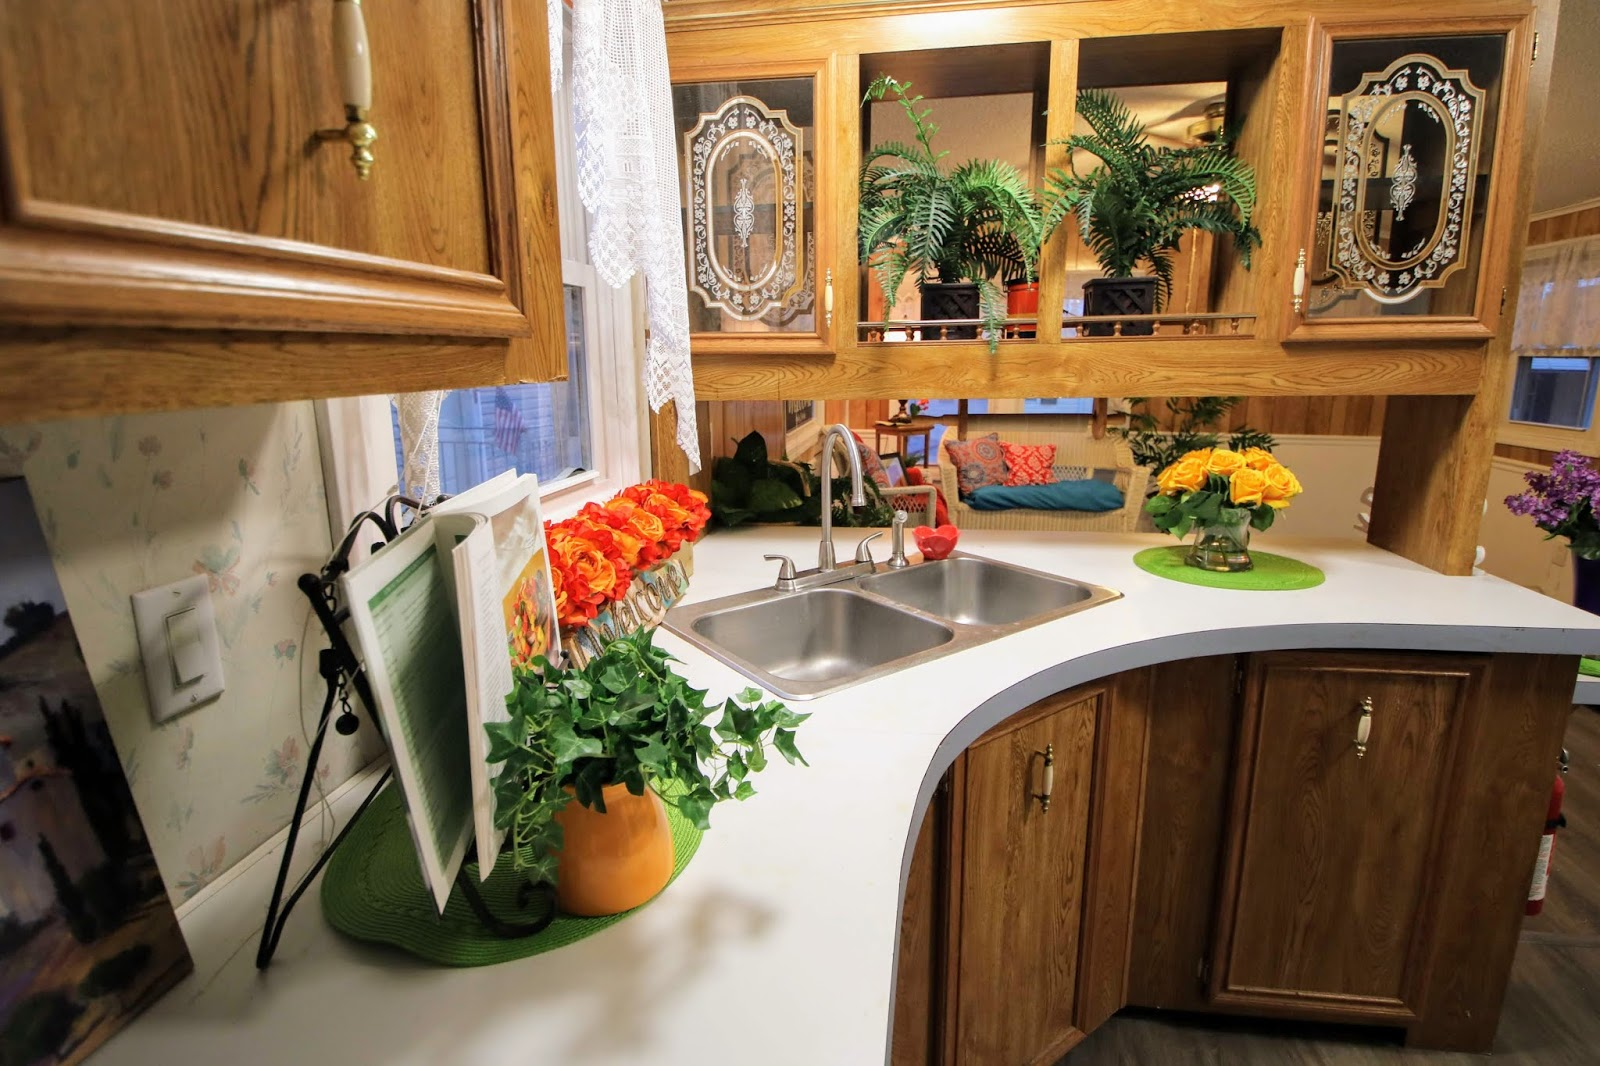 concept kitchen for rent    1600 x 1200